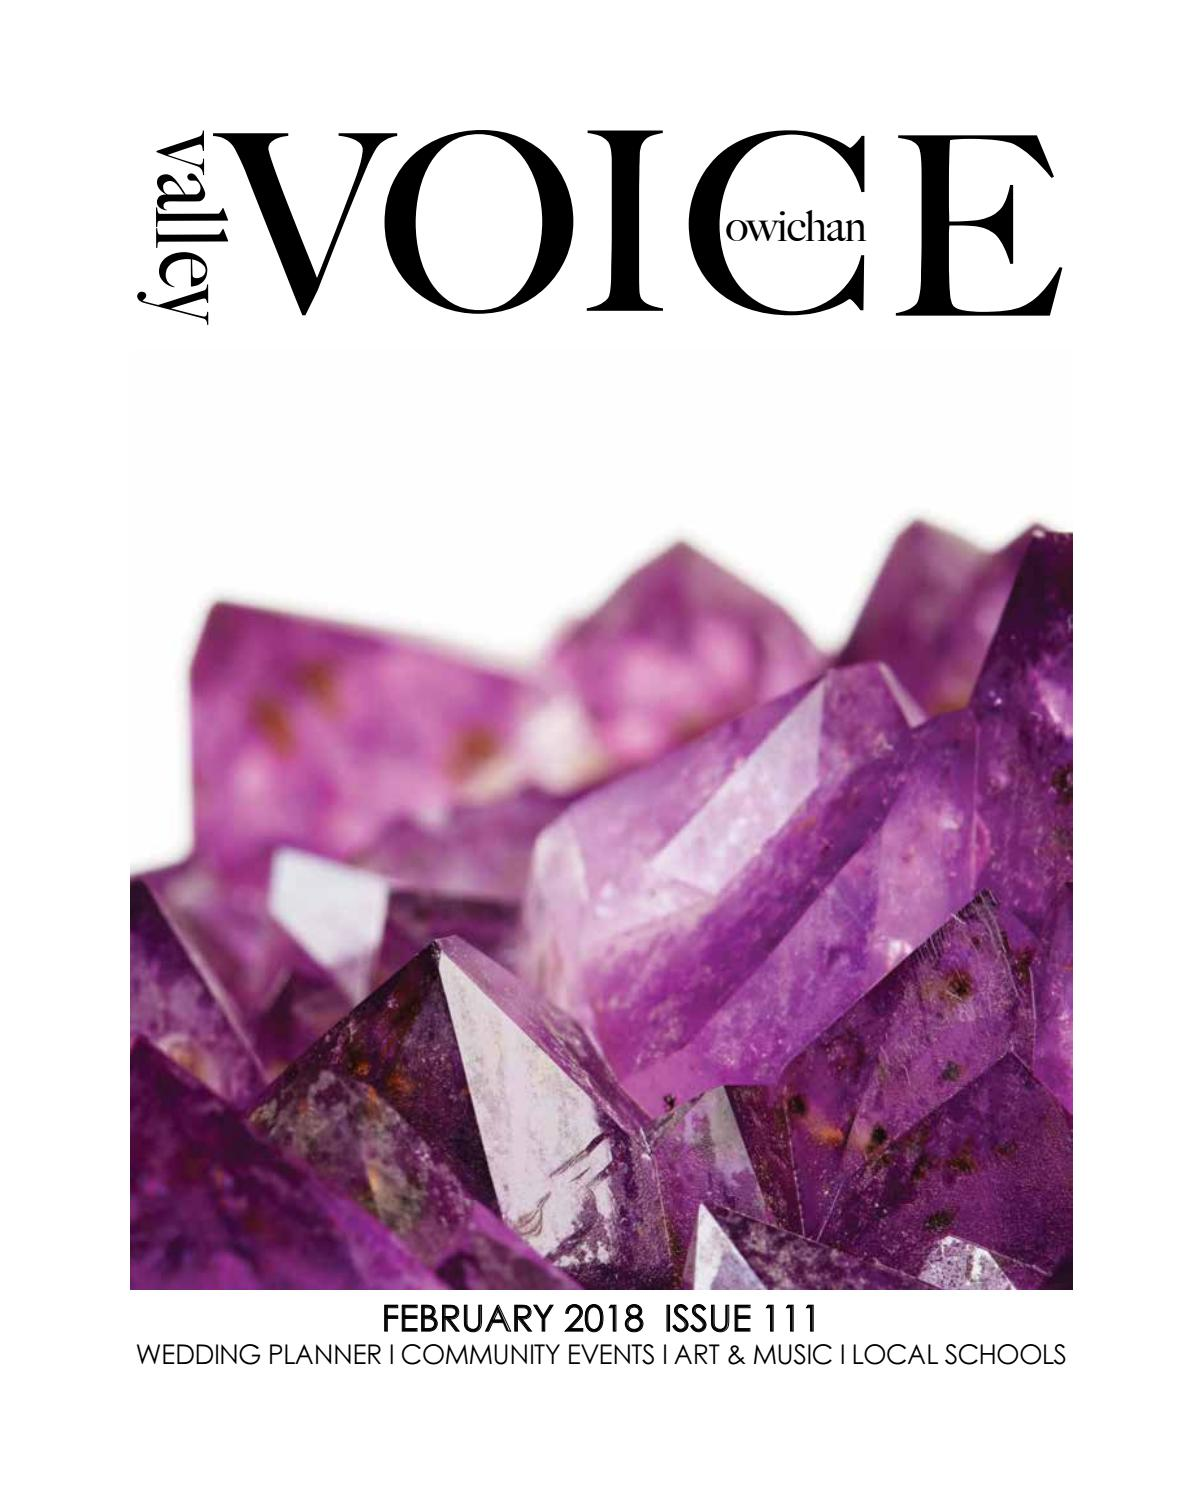 VV February 2018 Issue 111 by Cowichan Valley Voice - issuu